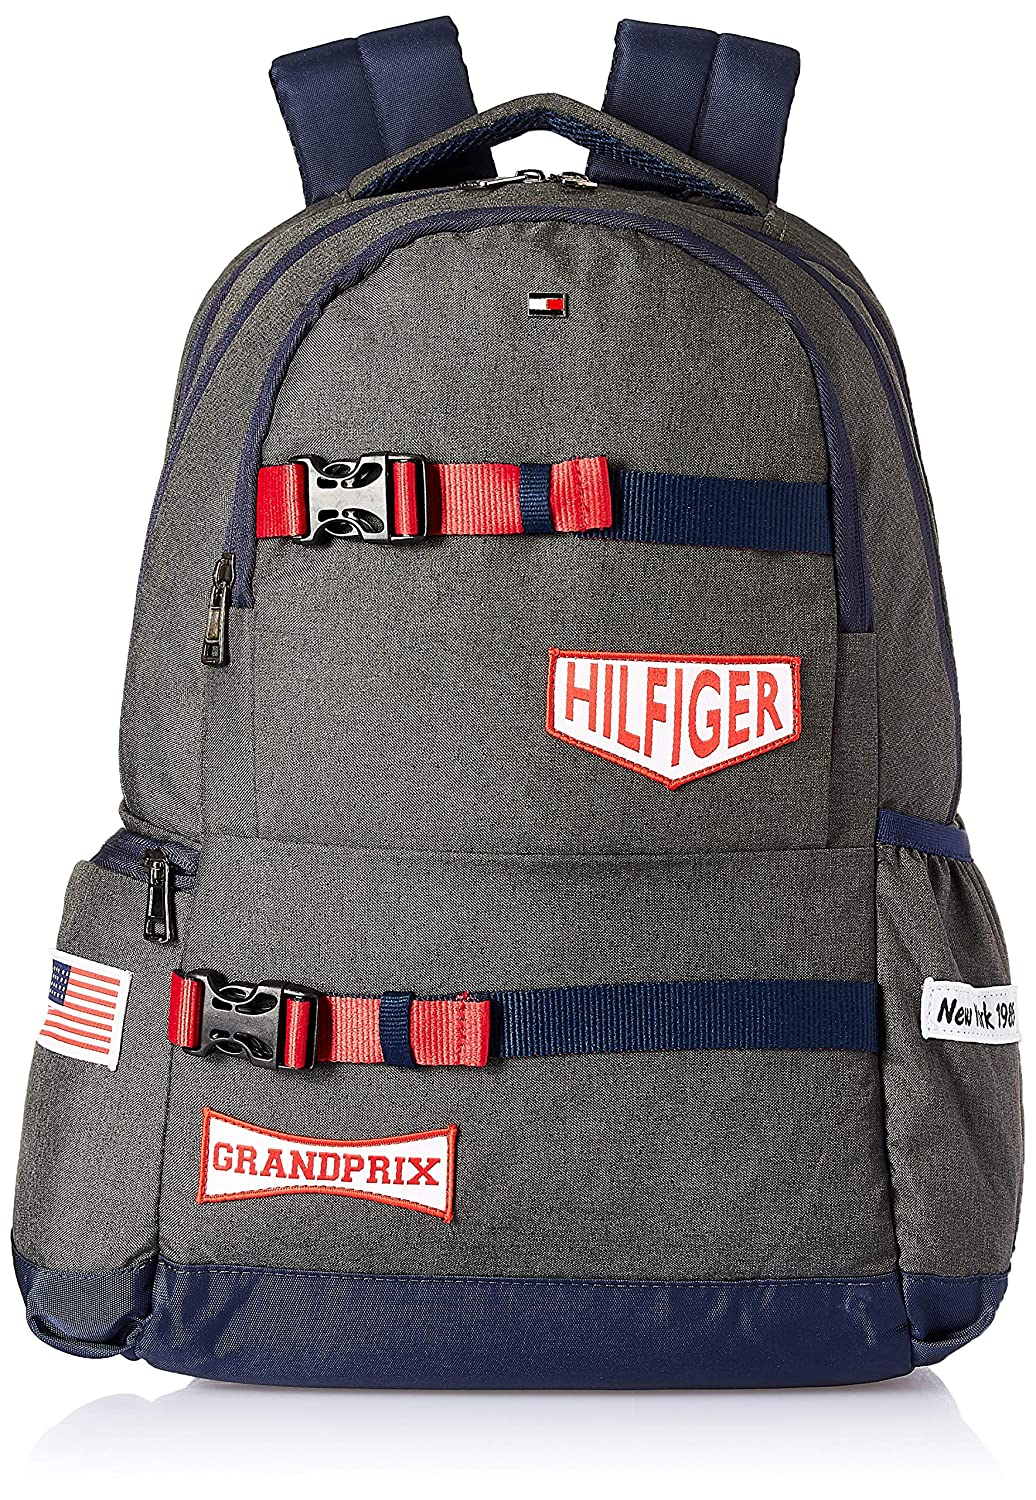 Tommy Hilfiger United 35 Ltrs Black Laptop Backpack